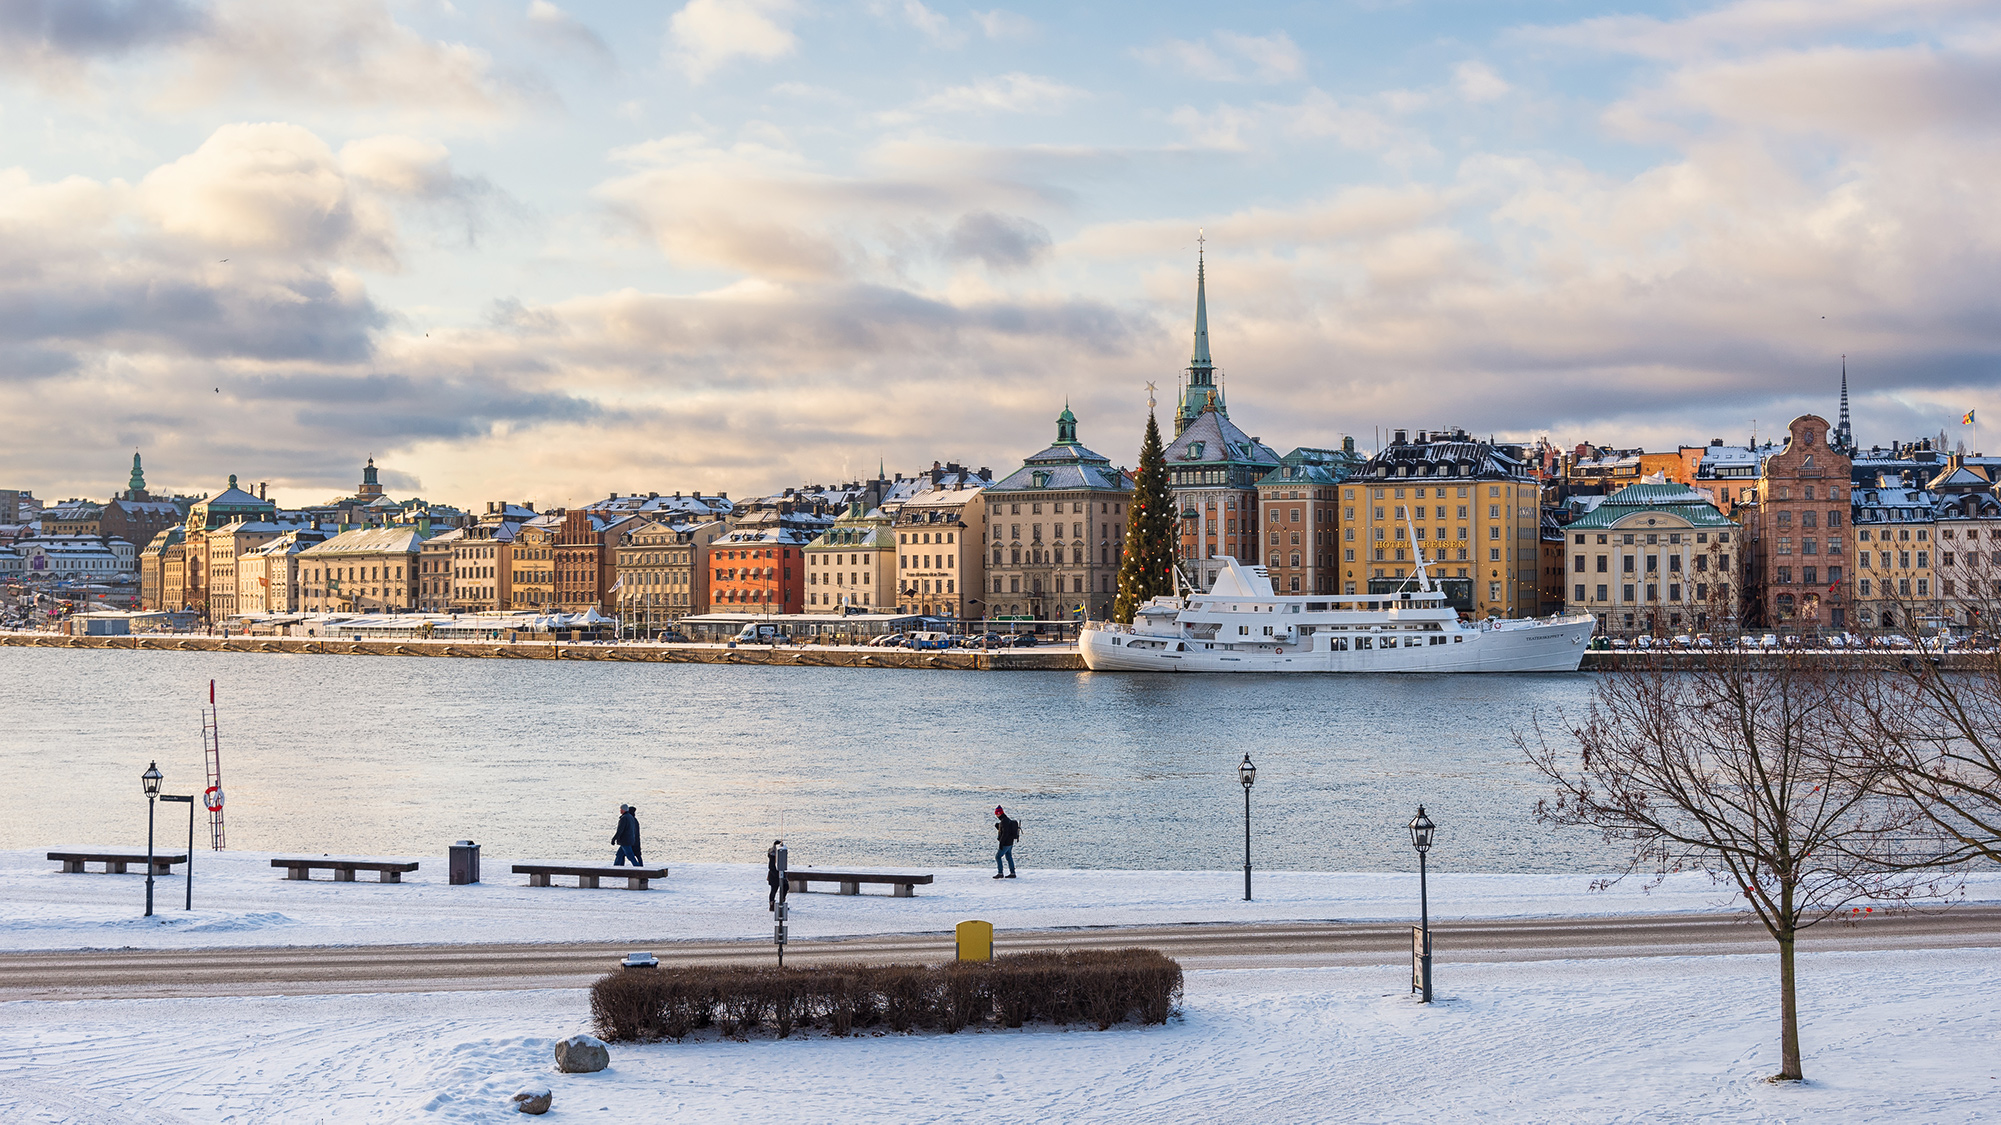 Welcome to come visit in Stockholm Sweden, or connect digitally from anywhere.